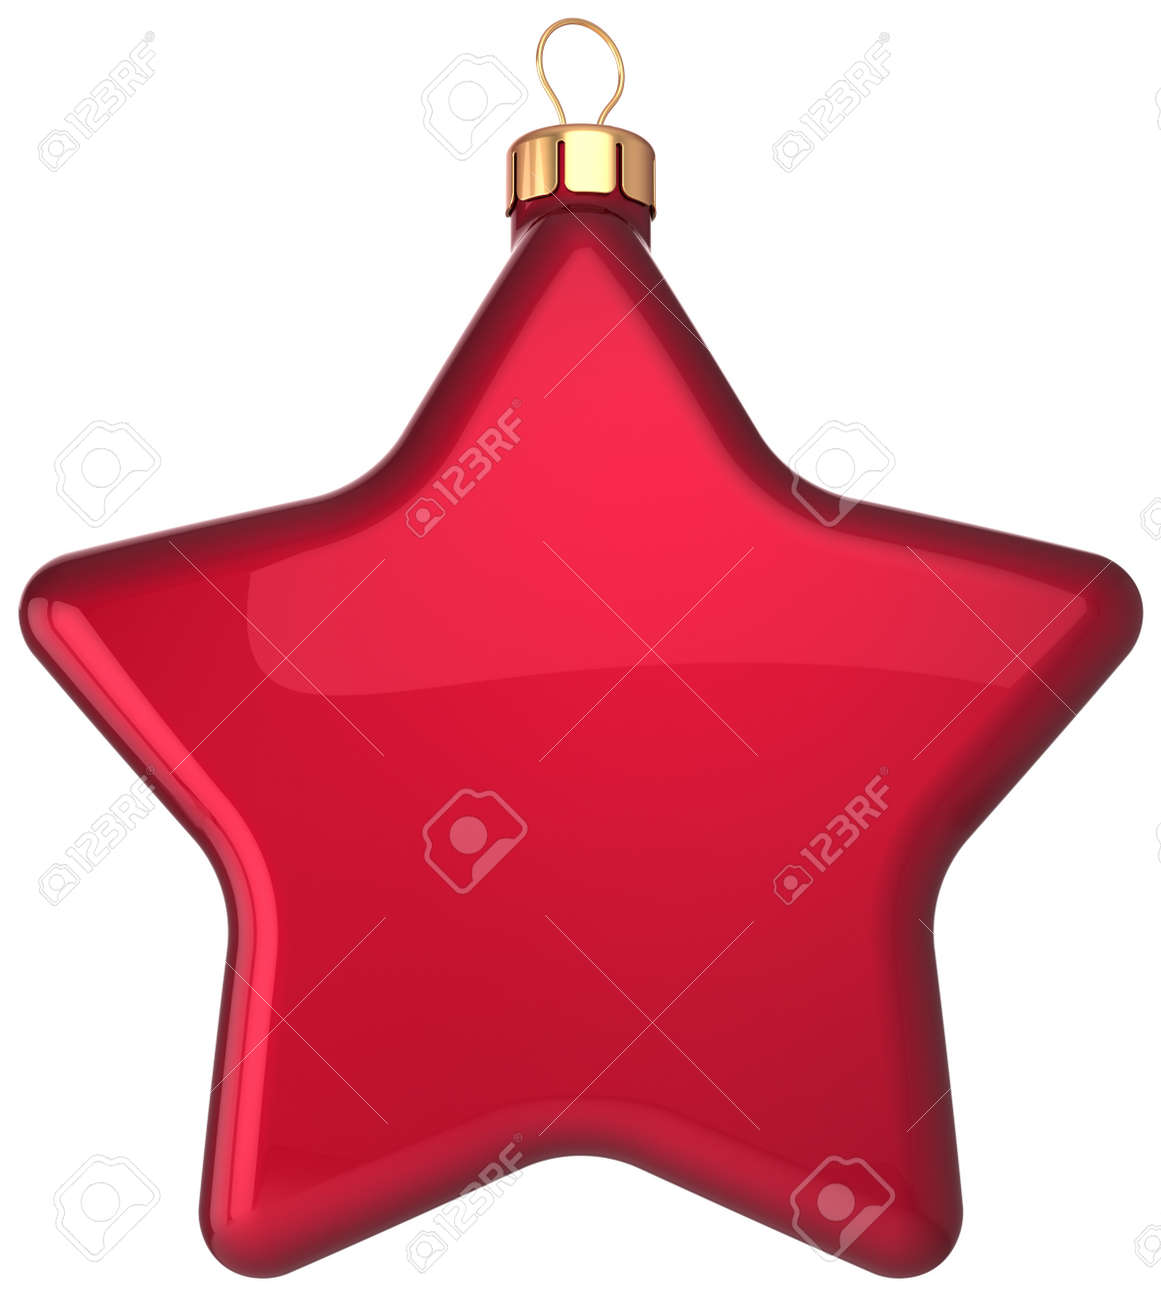 Red Christmas ball star shaped decoration Happy New Year bauble blank  Merry Xmas greeting card design element  Beautiful winter holidays icon concept  Detailed 3d render Stock Photo - 16412577